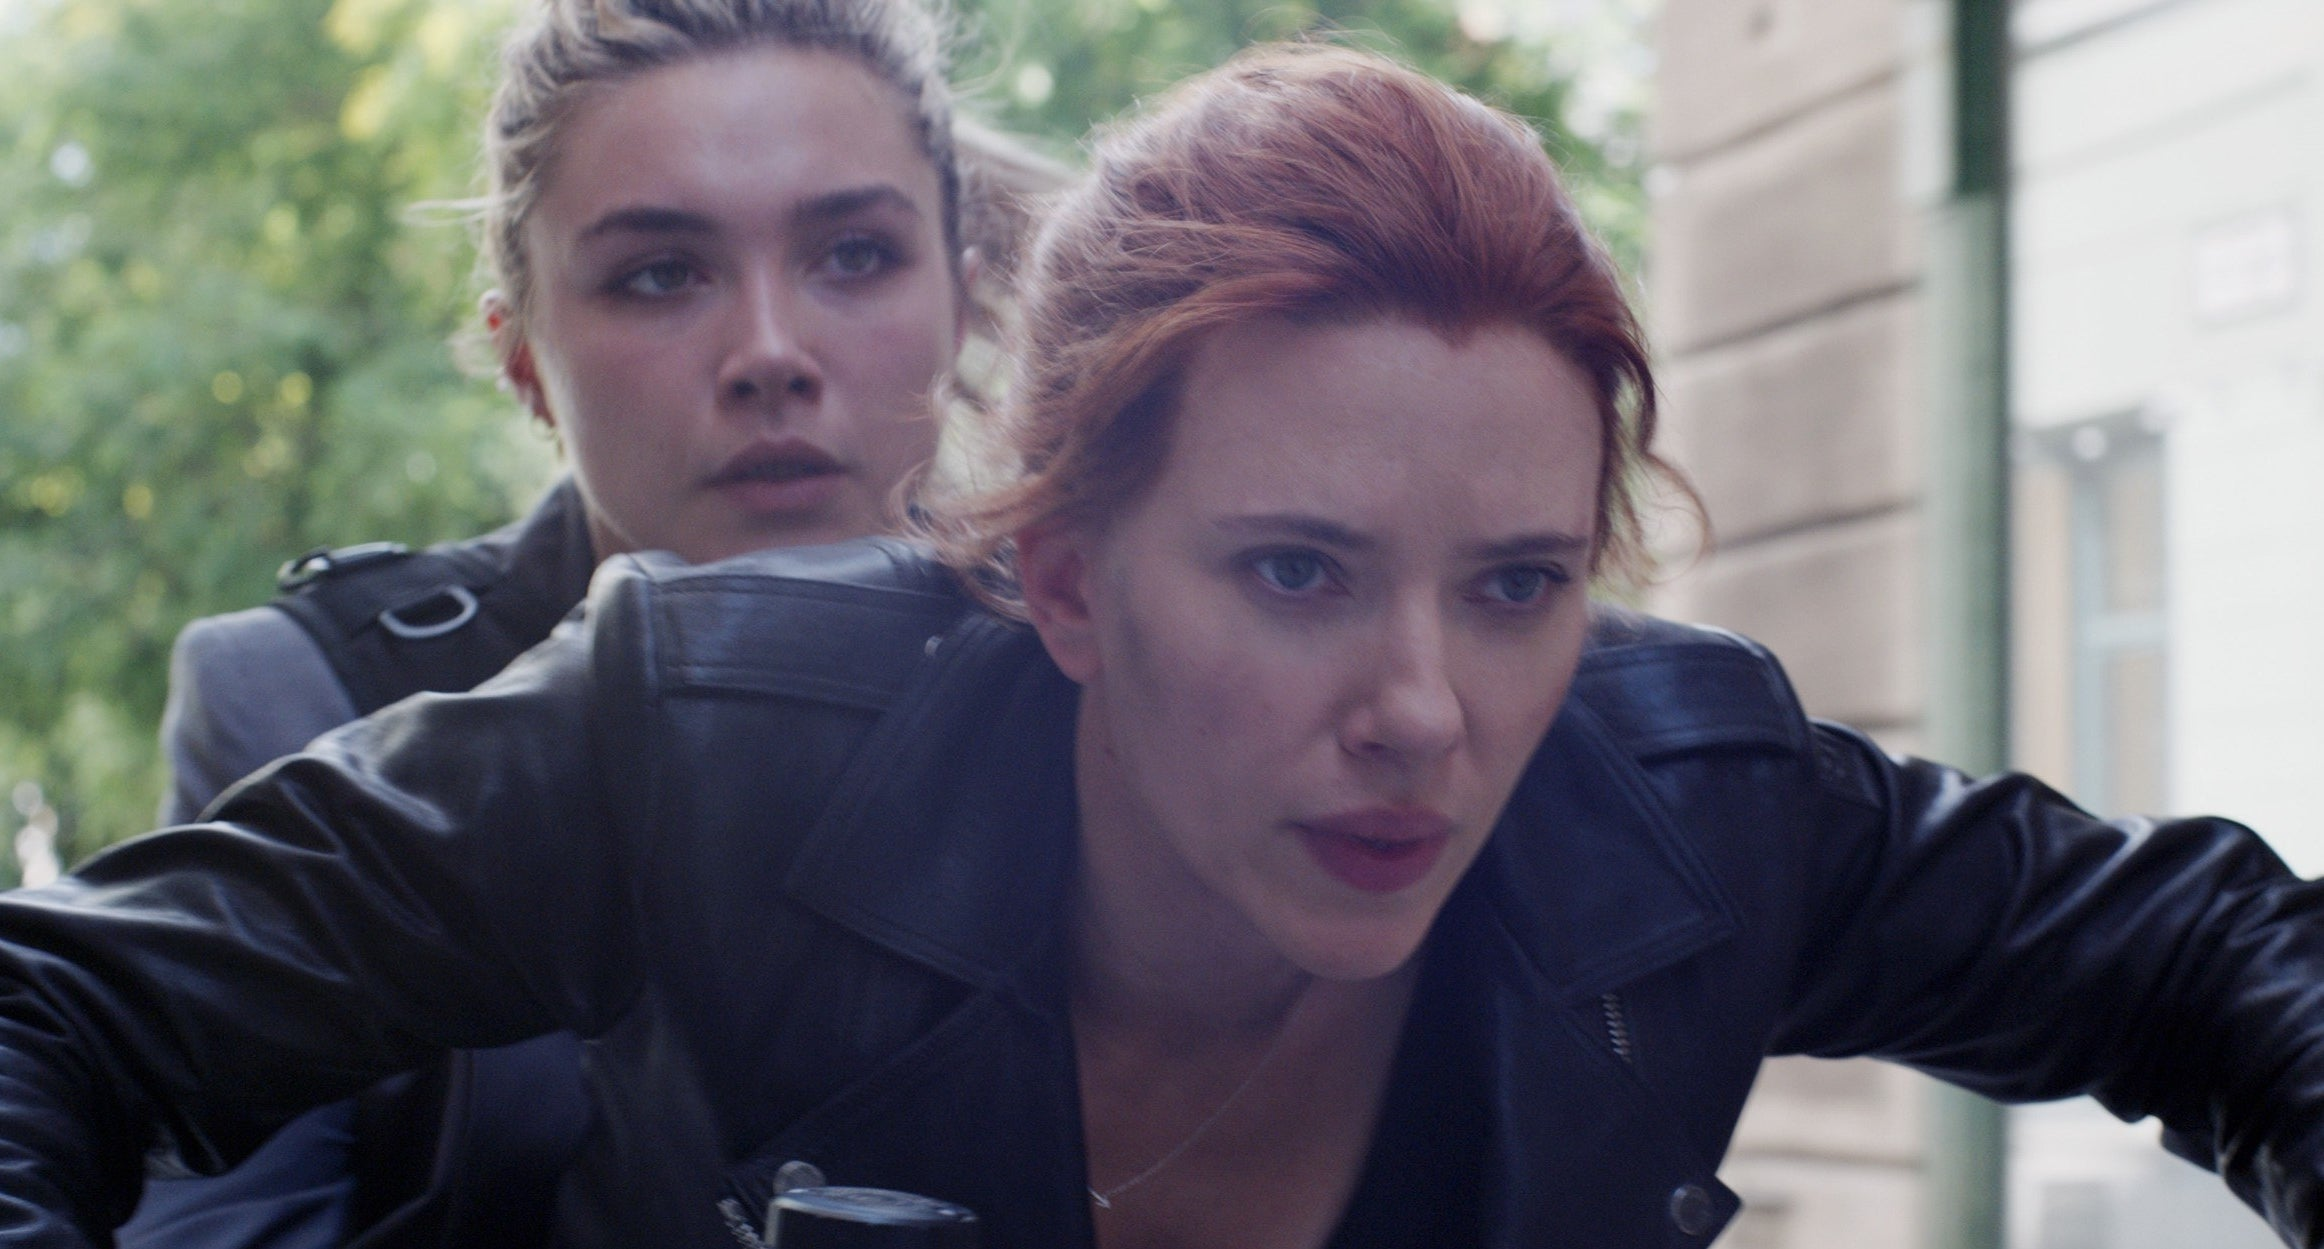 Florence Pugh and Scarlett Johansson ride a motercycle